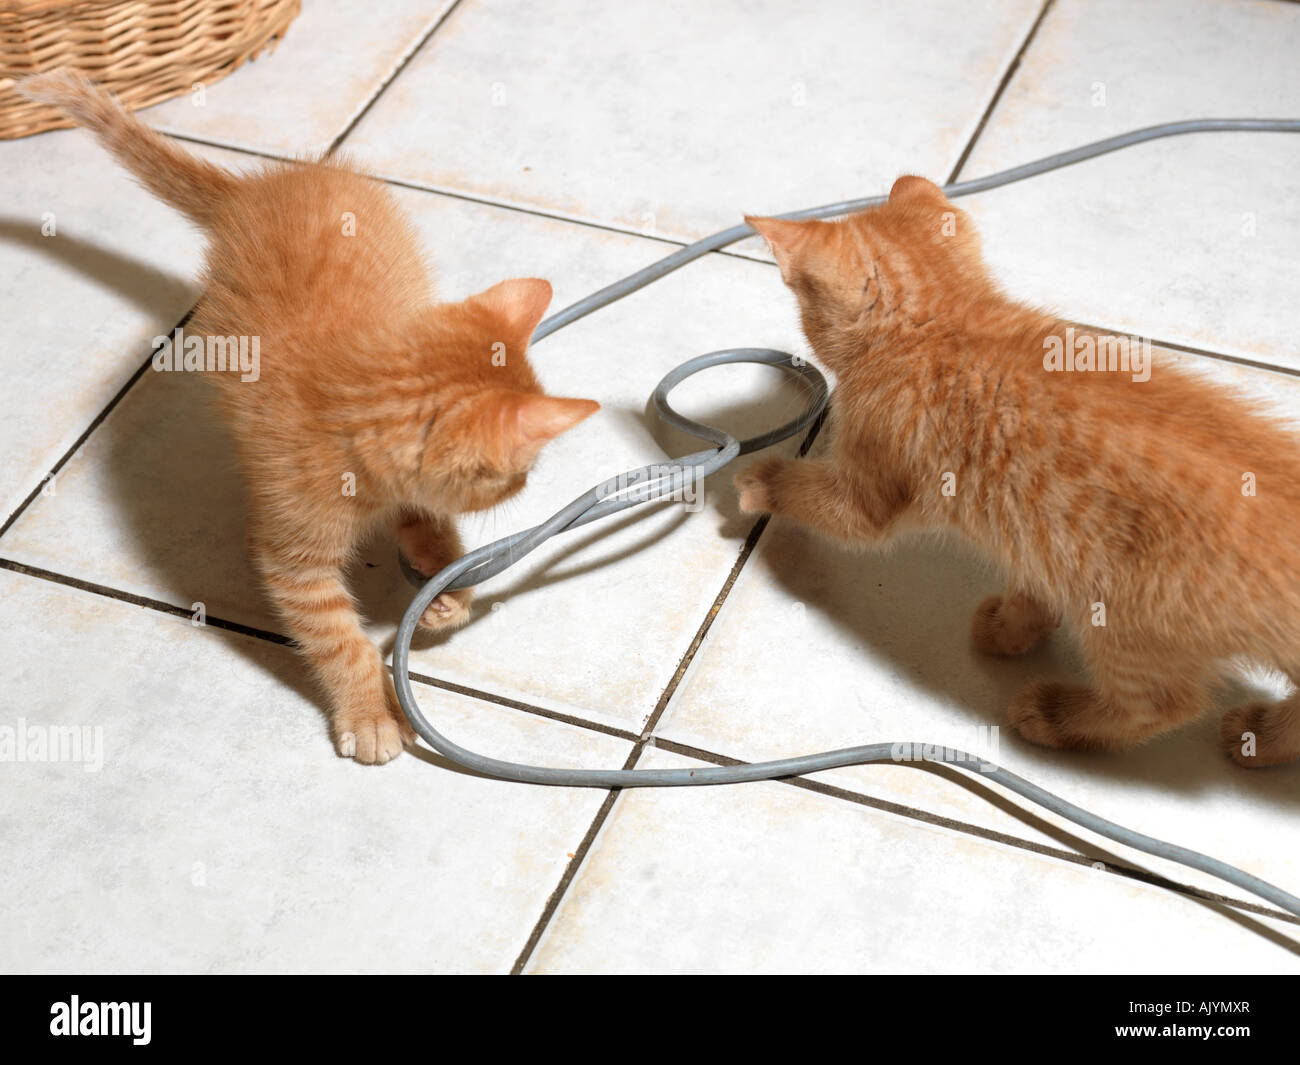 Kittens Biting Electrical Wire Stock Photo: 14837182 - Alamy